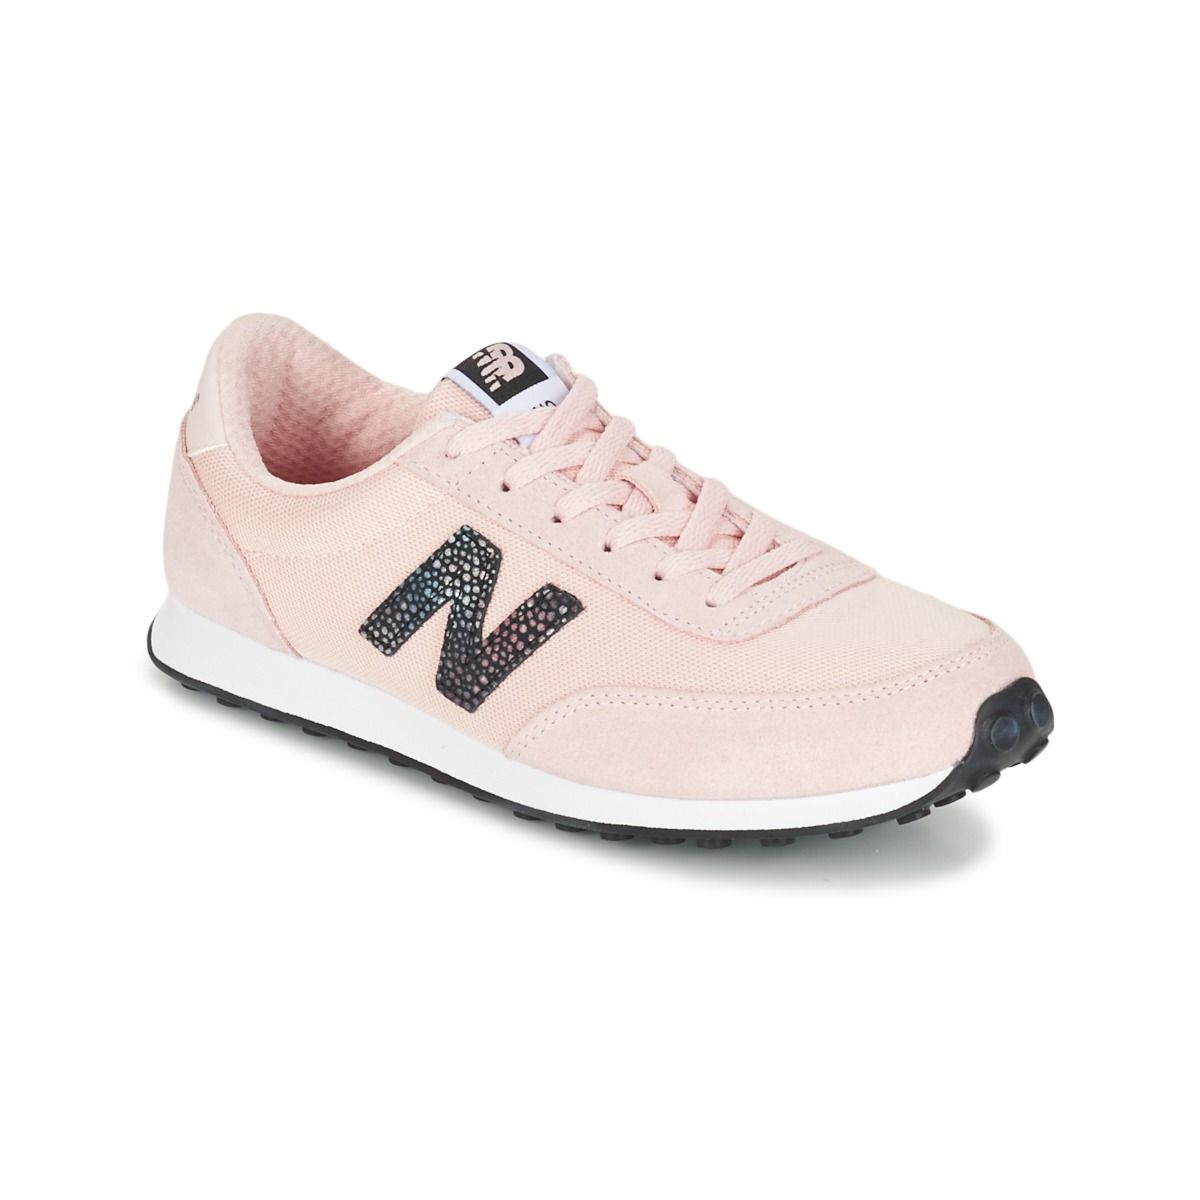 new balance kl410 rose